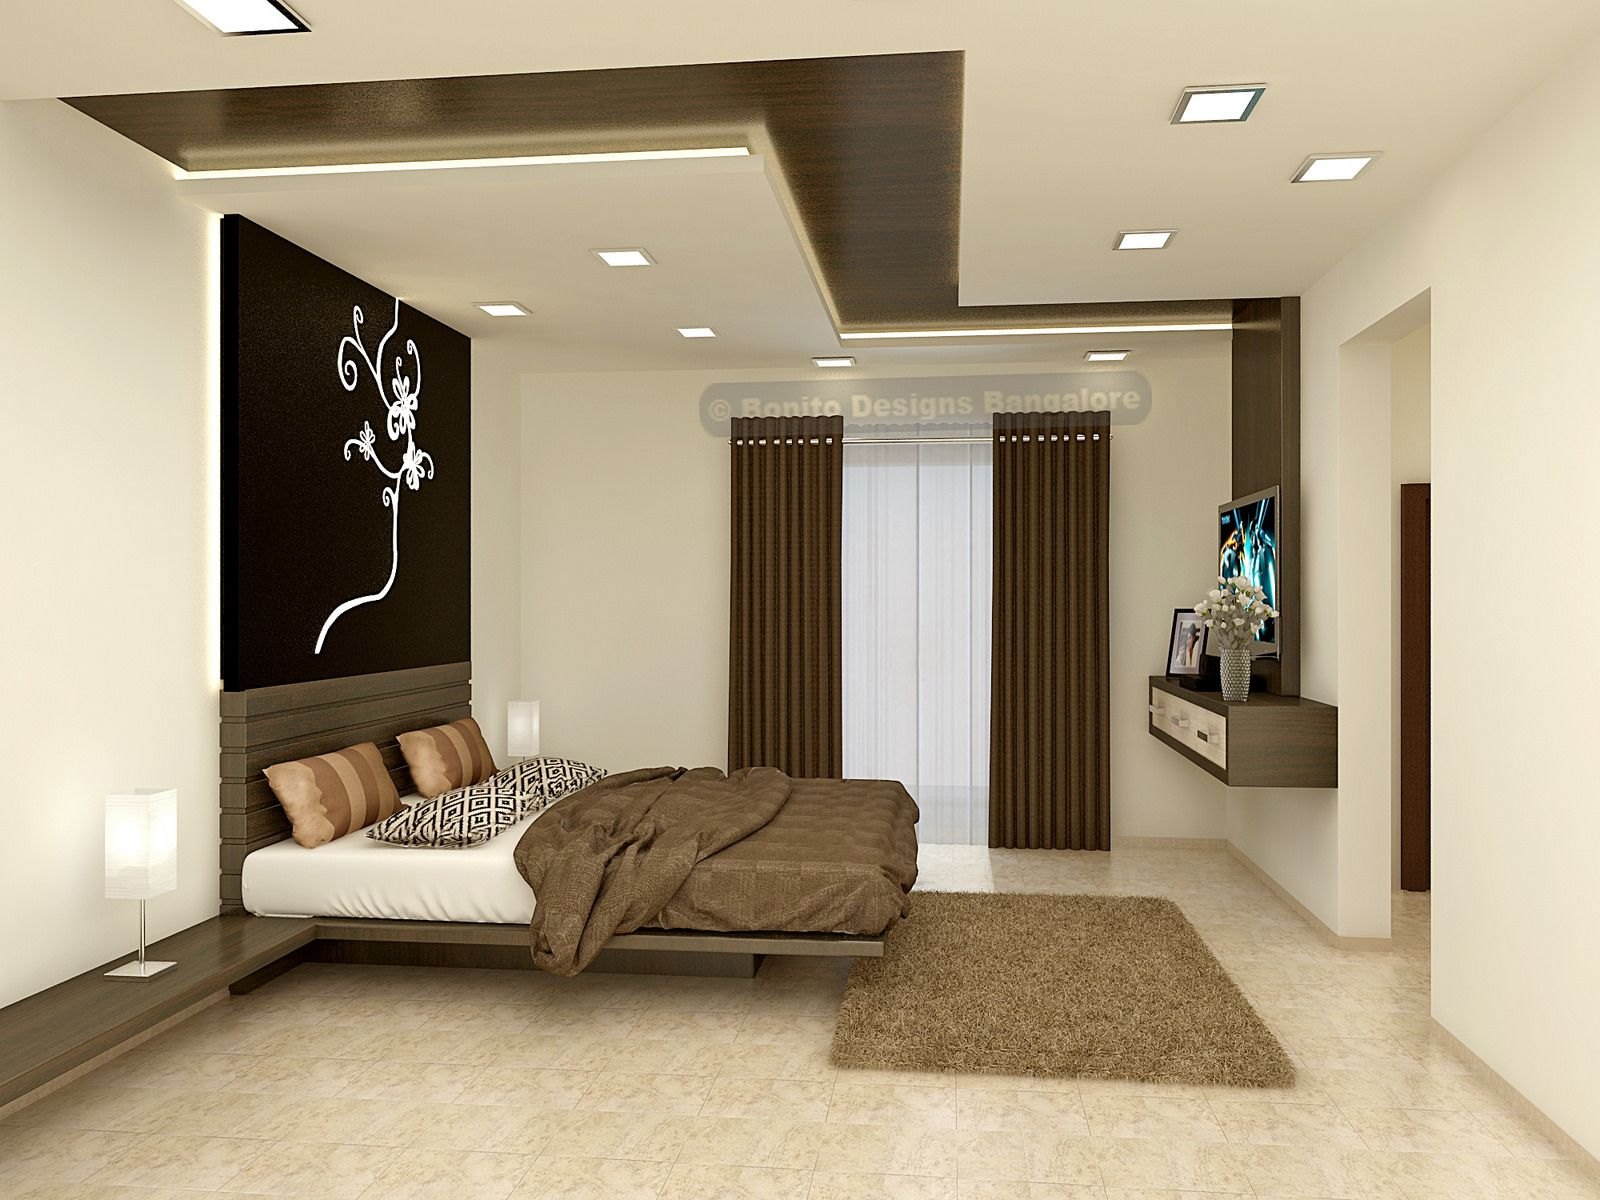 sandepmbr 1 | Ceilings, Bedrooms and False ceiling ideas